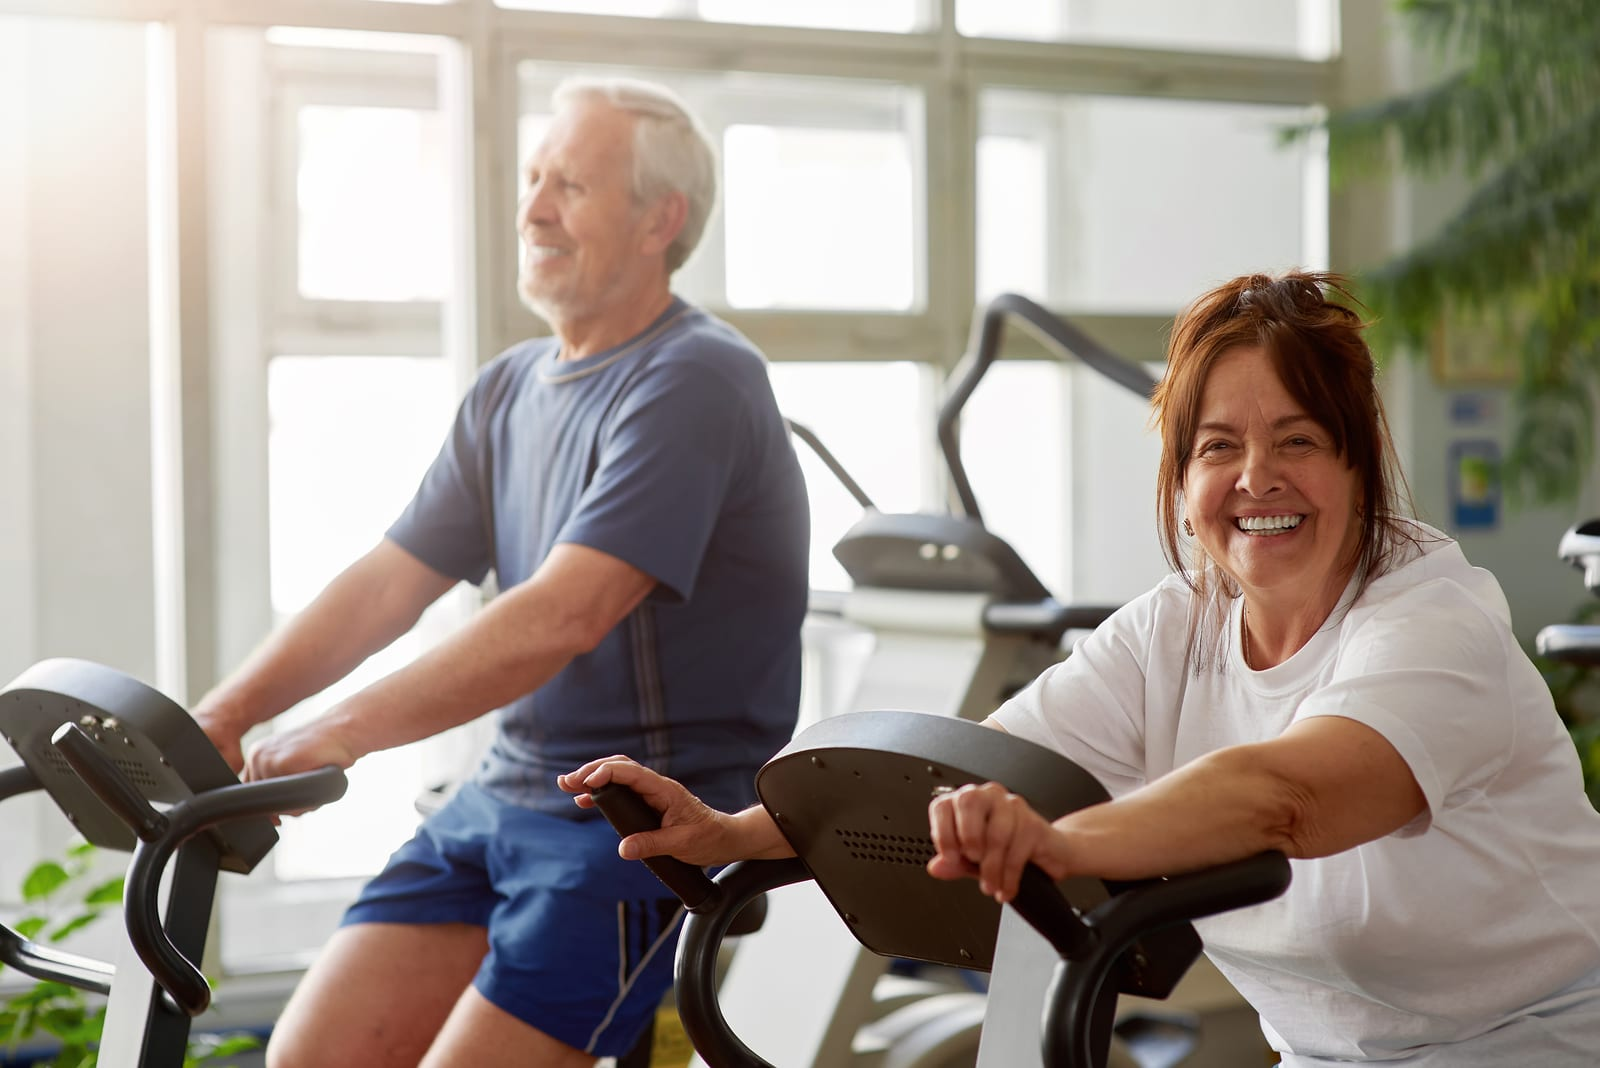 Man and woman in their 50s on stationary bikes